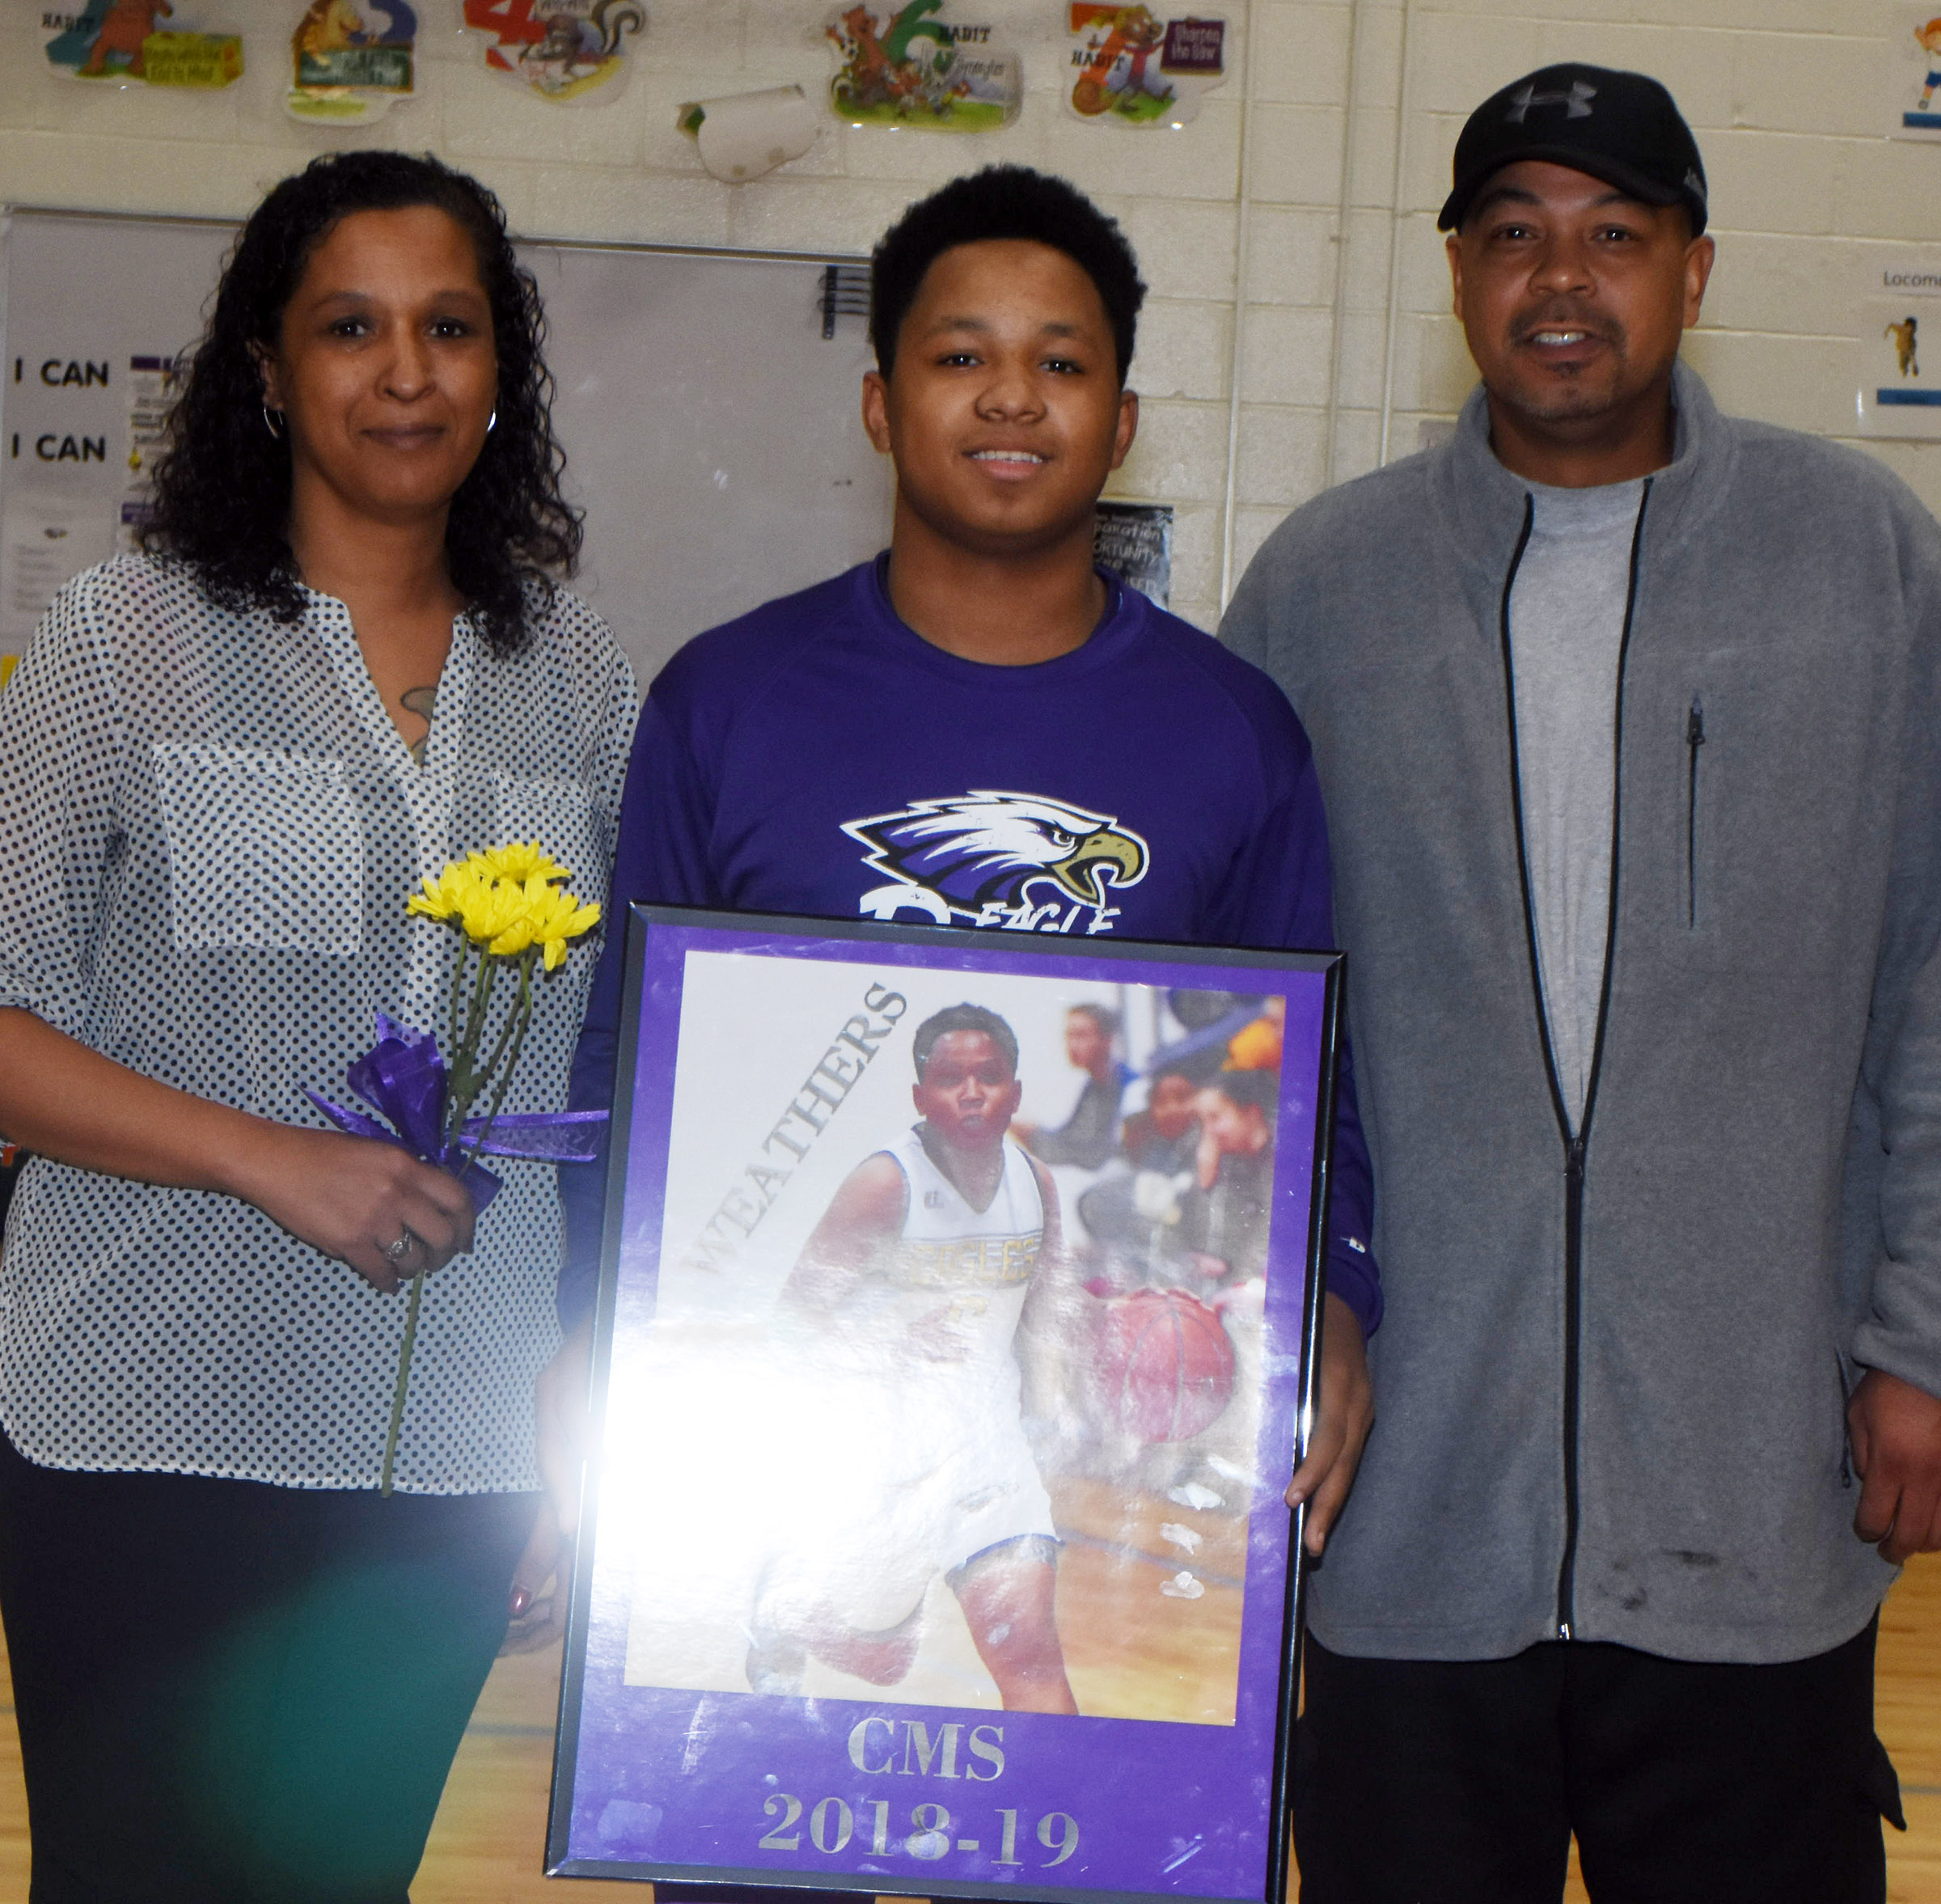 CMS boys' basketball eighth-grader player Deondre Weathers is honored.